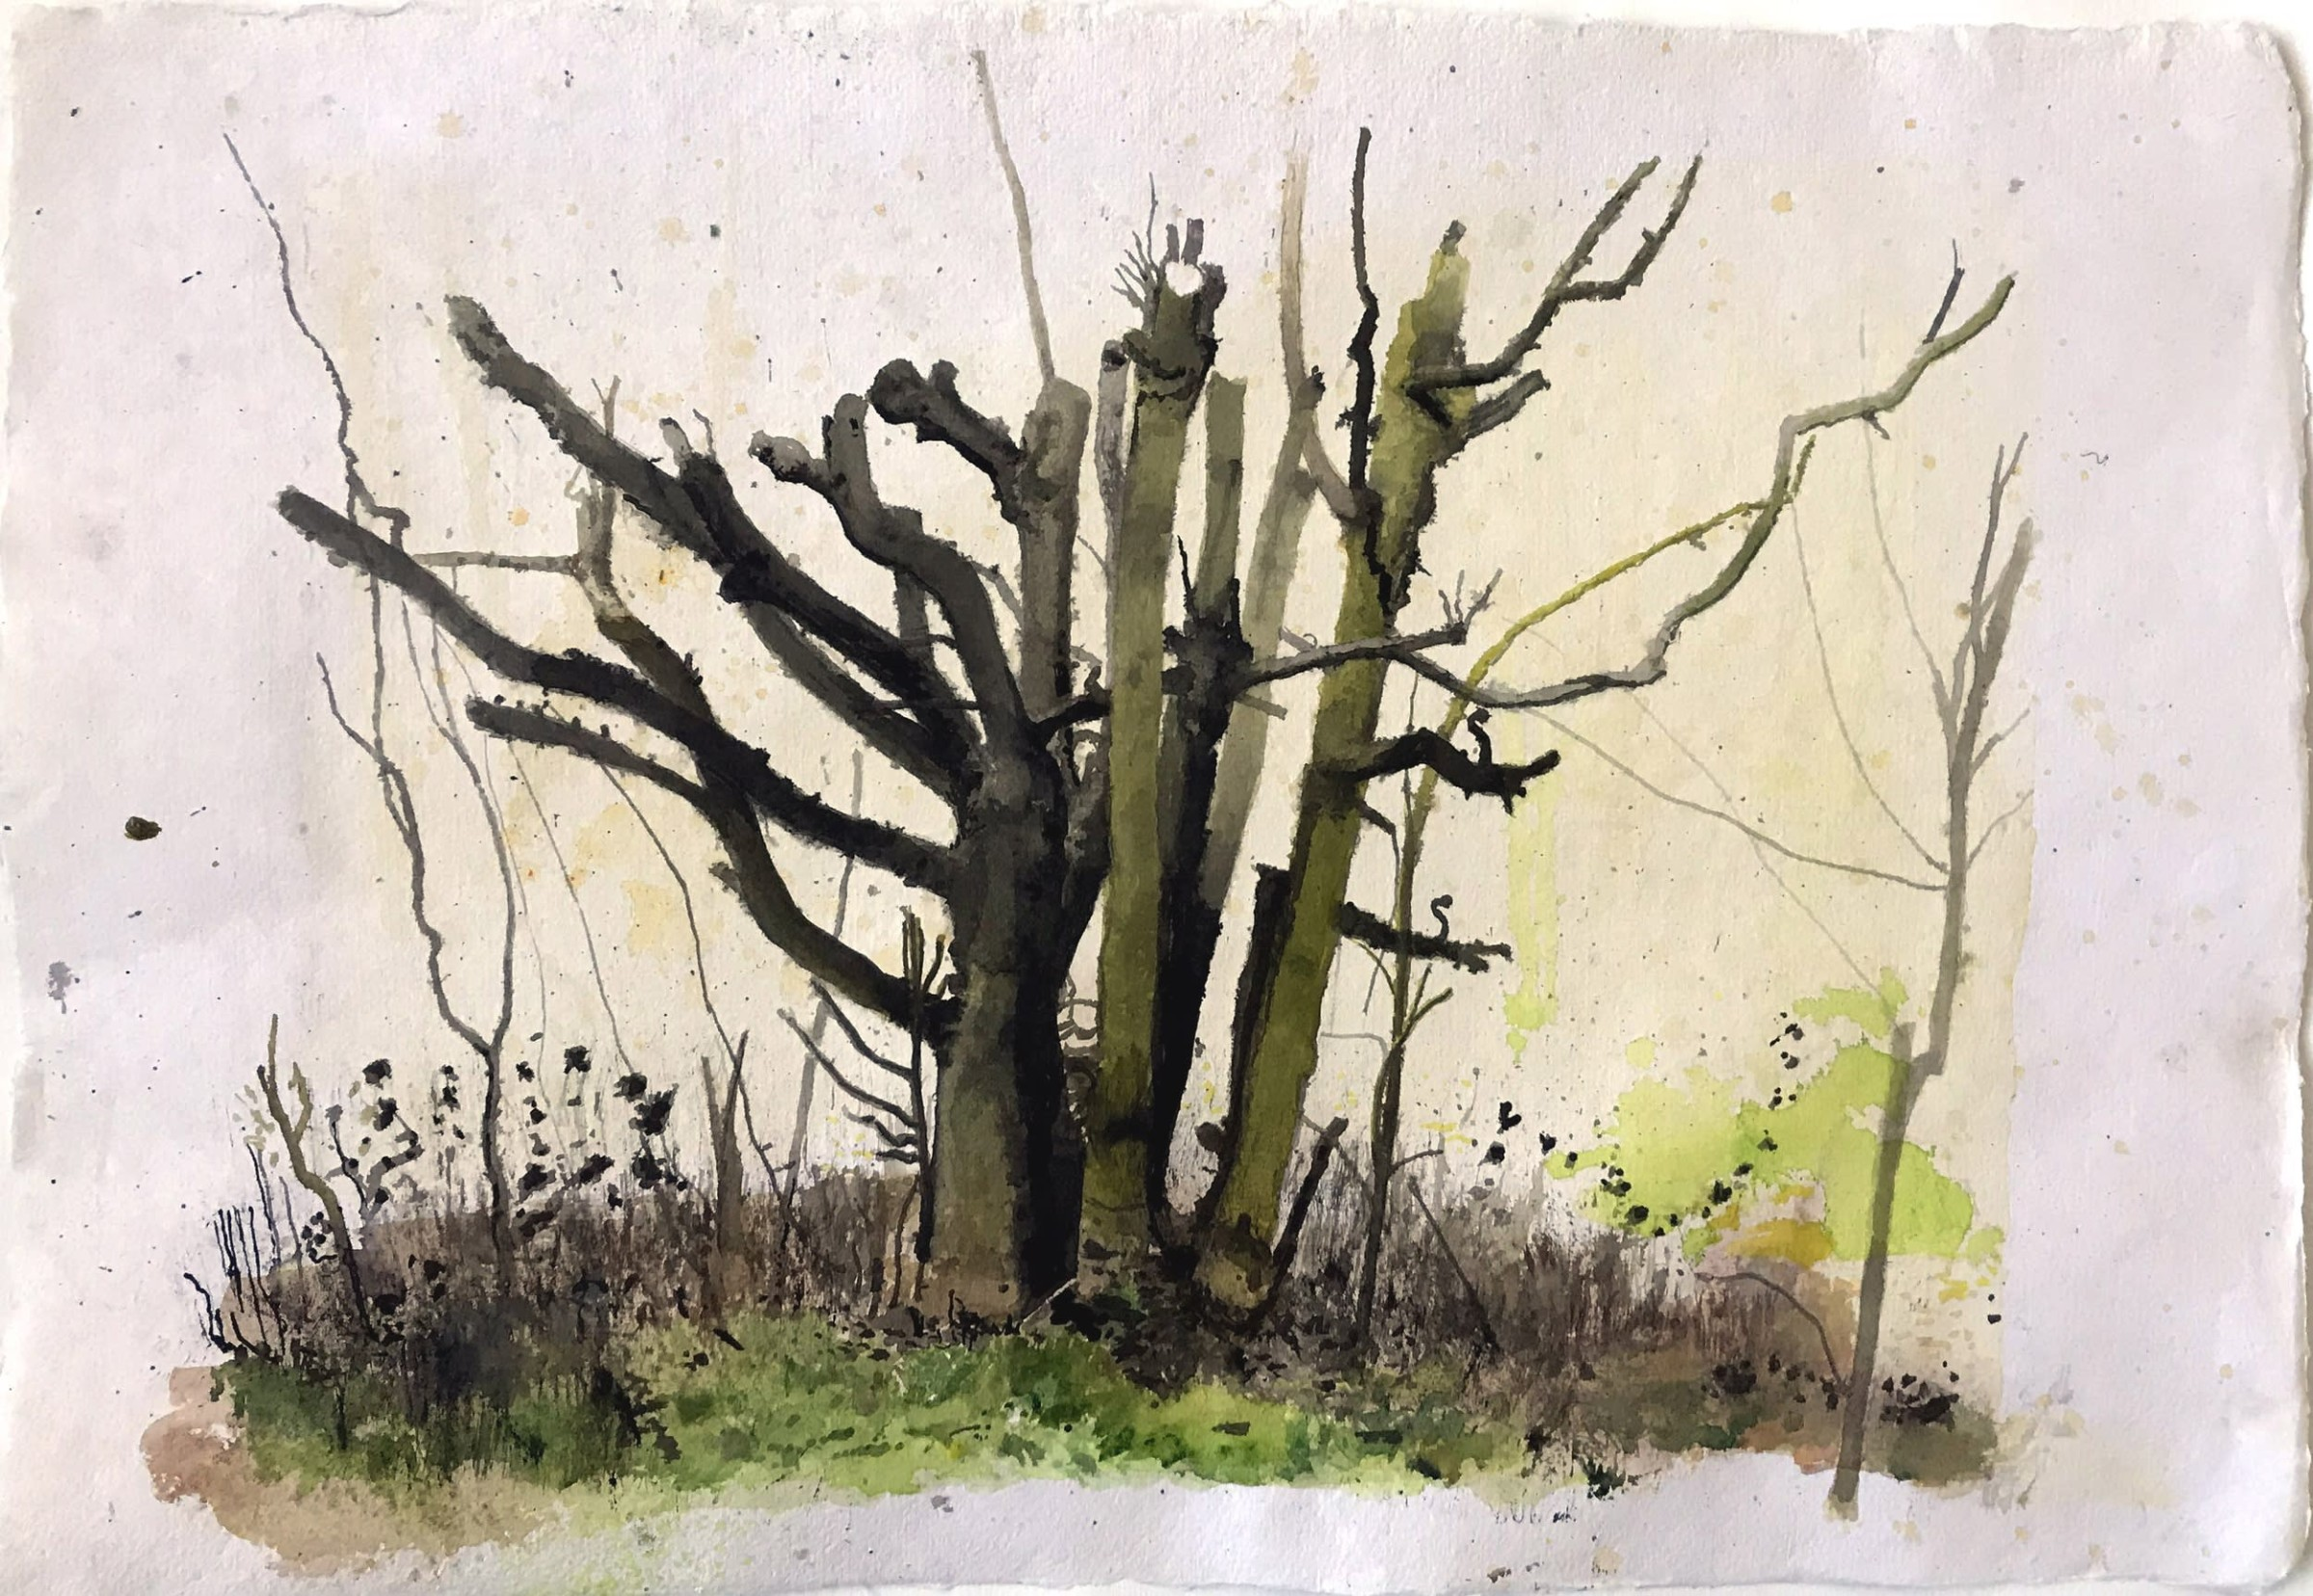 """<span class=""""link fancybox-details-link""""><a href=""""/artists/88-iain-nicholls/works/12281-iain-nicholls-elsecar-cropped-trees-study-3/"""">View Detail Page</a></span><div class=""""artist""""><span class=""""artist""""><strong>Iain Nicholls</strong></span></div><div class=""""title""""><em>Elsecar Cropped Trees Study 3</em></div><div class=""""medium"""">watercolour on paper - mounted on board</div><div class=""""dimensions"""">Artwork: 43 x 60 cm</div><div class=""""price"""">£420.00</div>"""